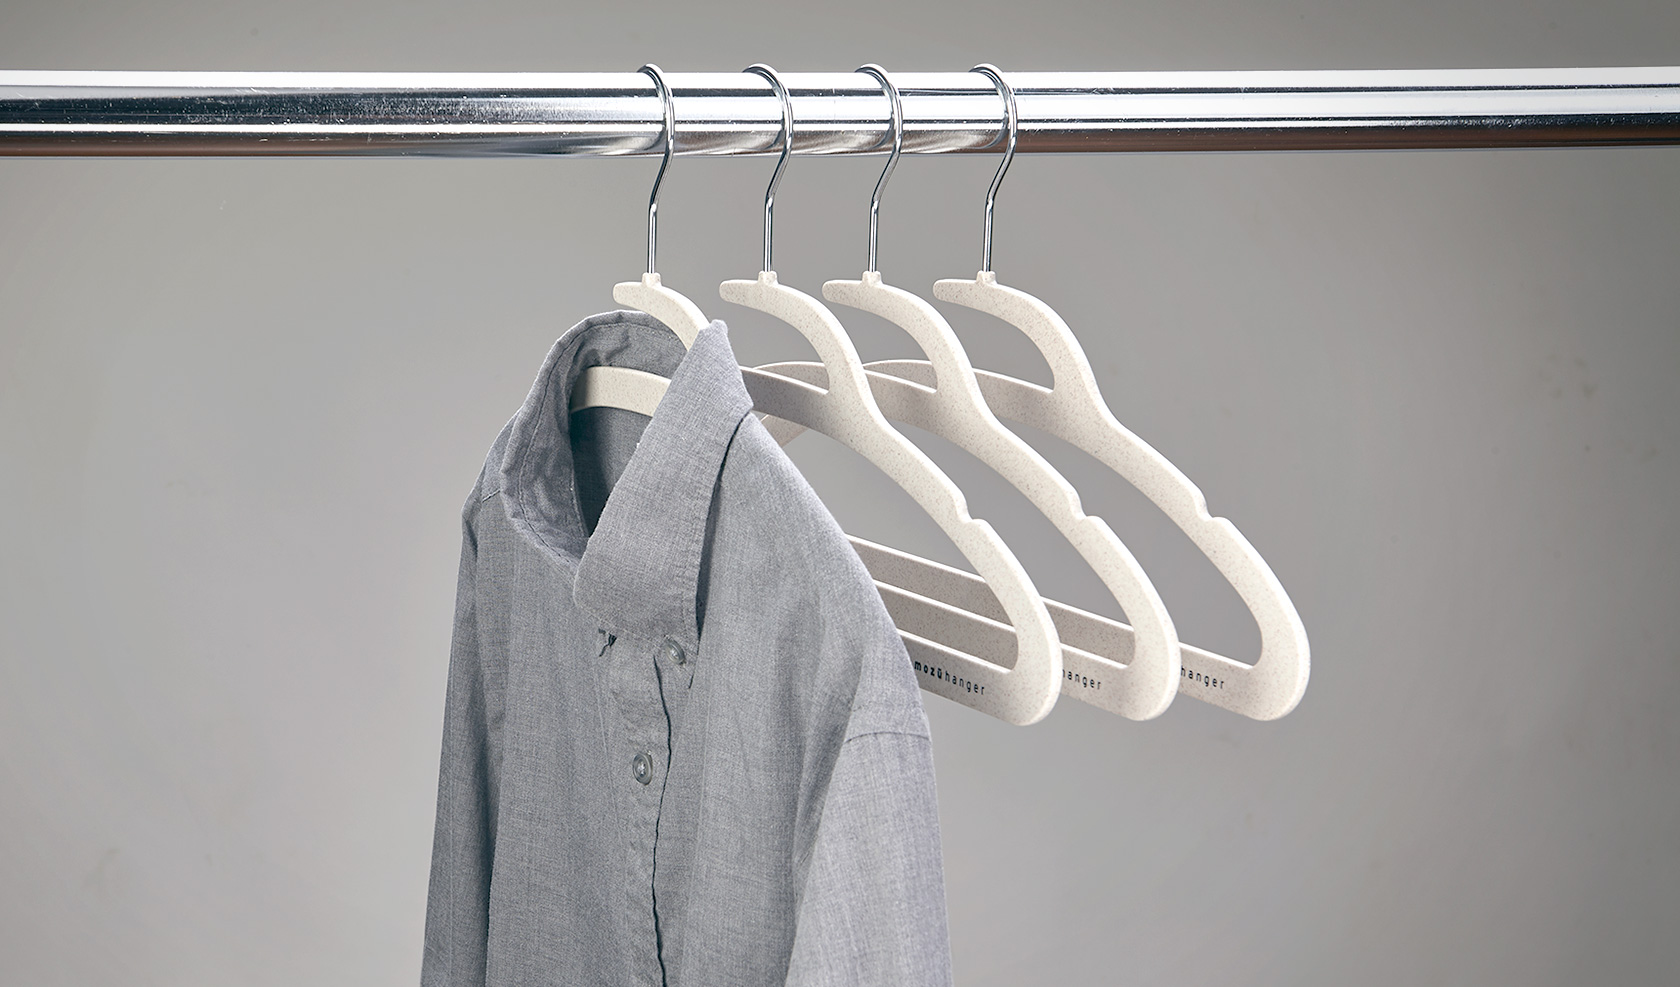 Fully buttoned shirt on wheat straw Mozu Hangers